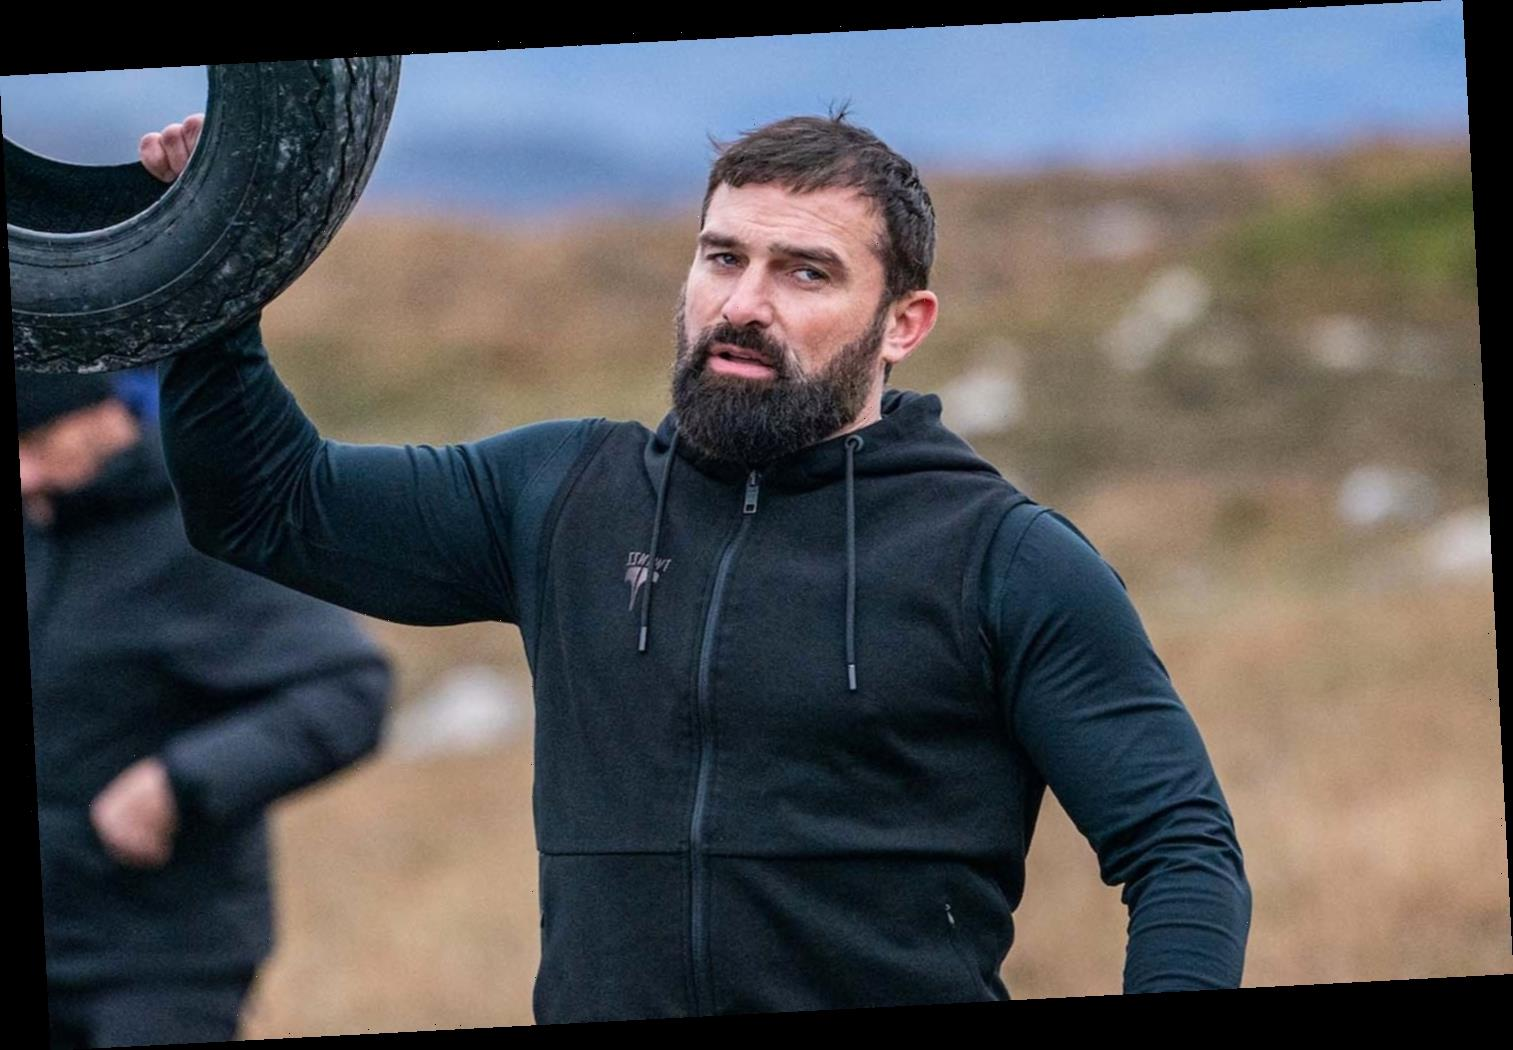 Ant Middleton says 'I'm happy' after SAS: Who Dares Wins axing and vows to make TV comeback